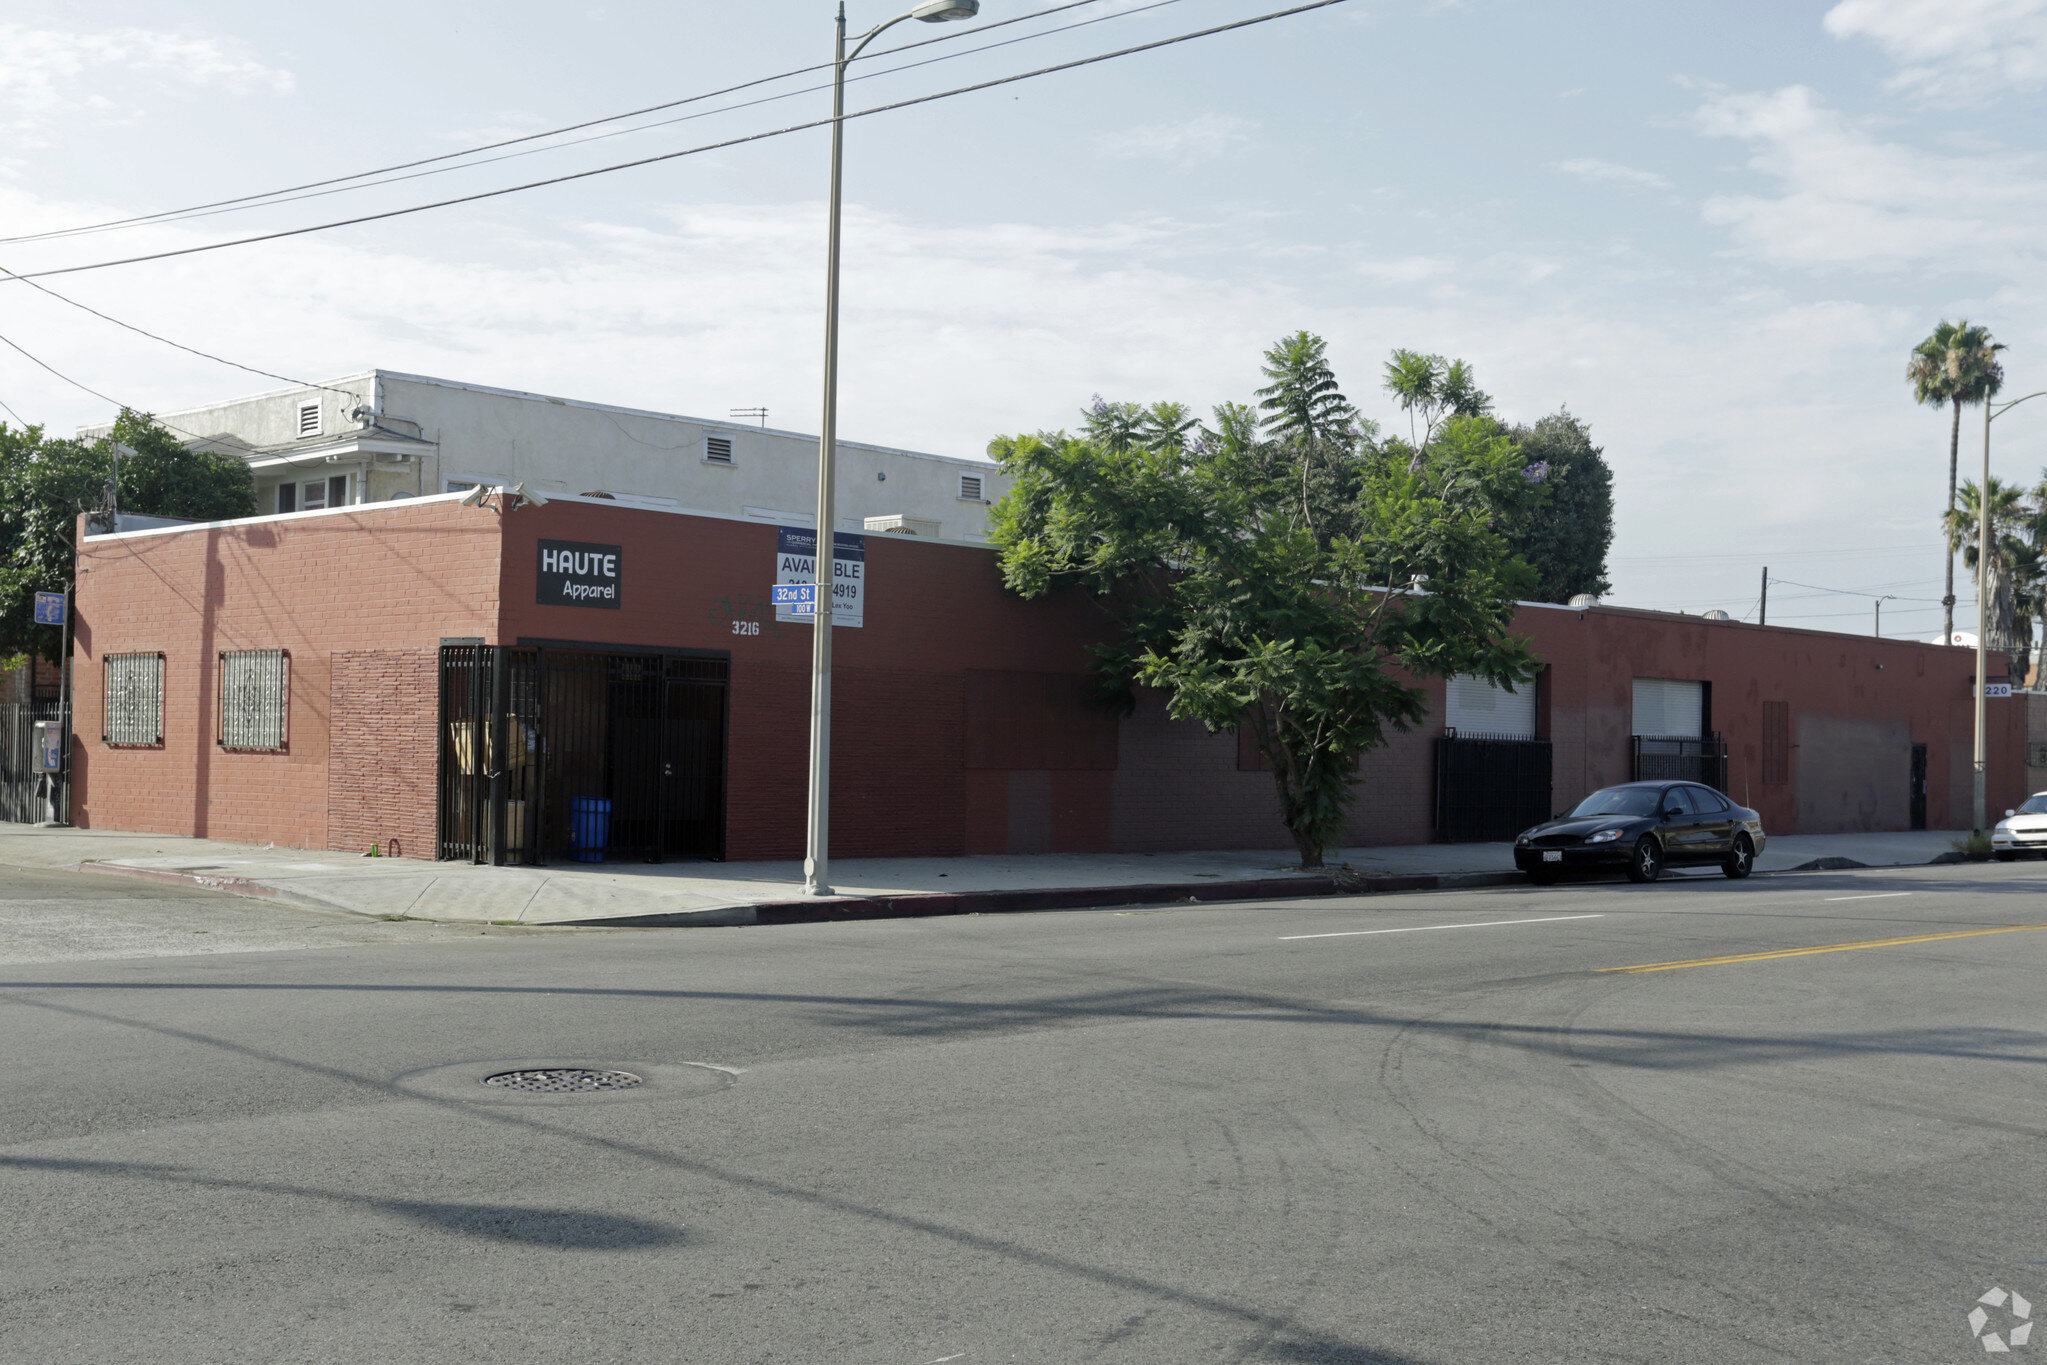 3216-3220 south hill street, los angeles - - Industrial Building- GBA 7,995 SF- Land 10,497 SF- Well-maintained Building- Offices with Central Air-conditioning